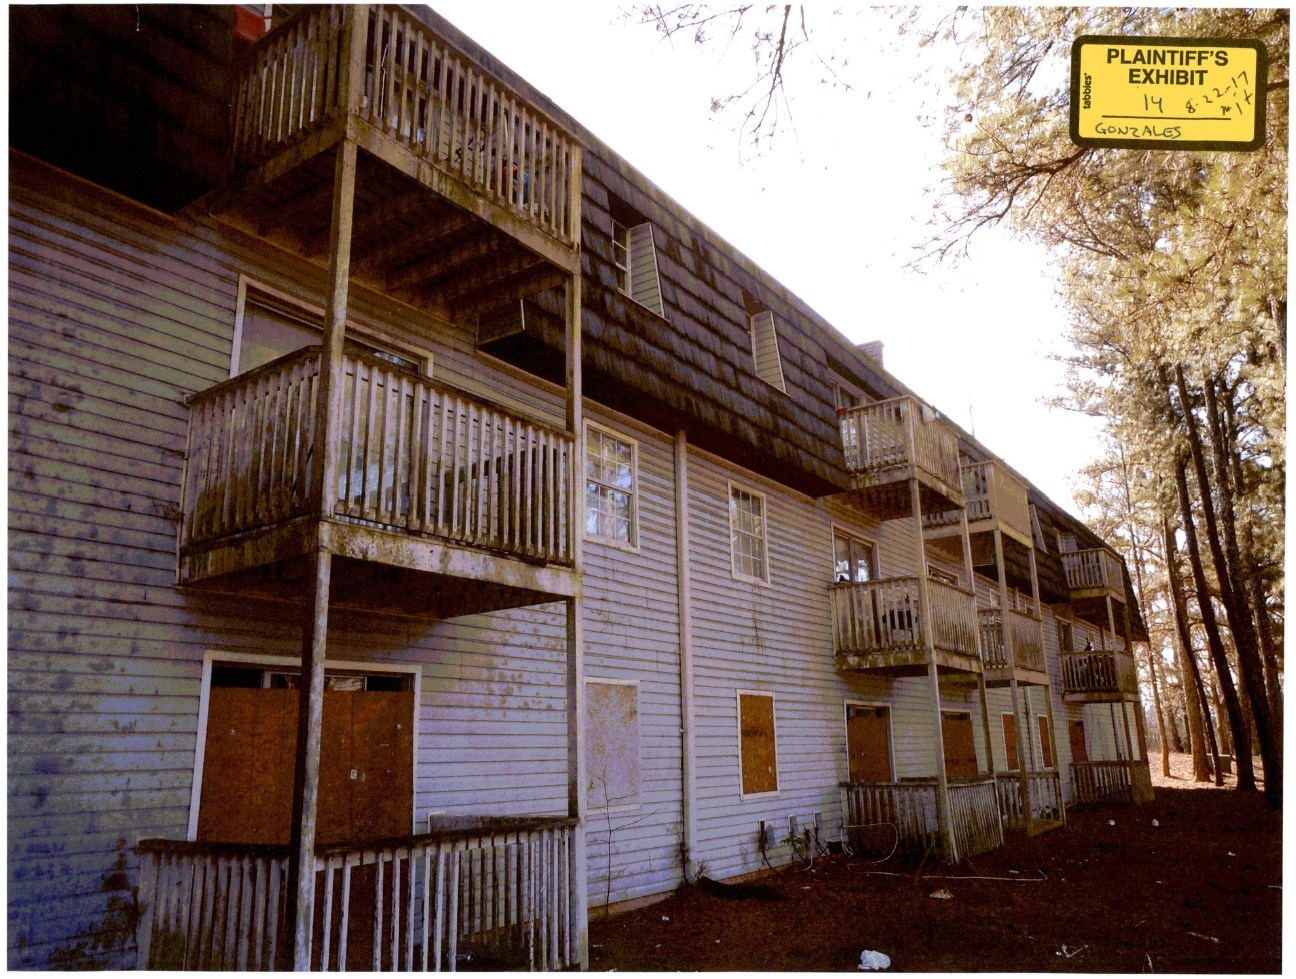 The owners of this Atlanta, Georgia apartment complex failed to provide basic security for their tenants.